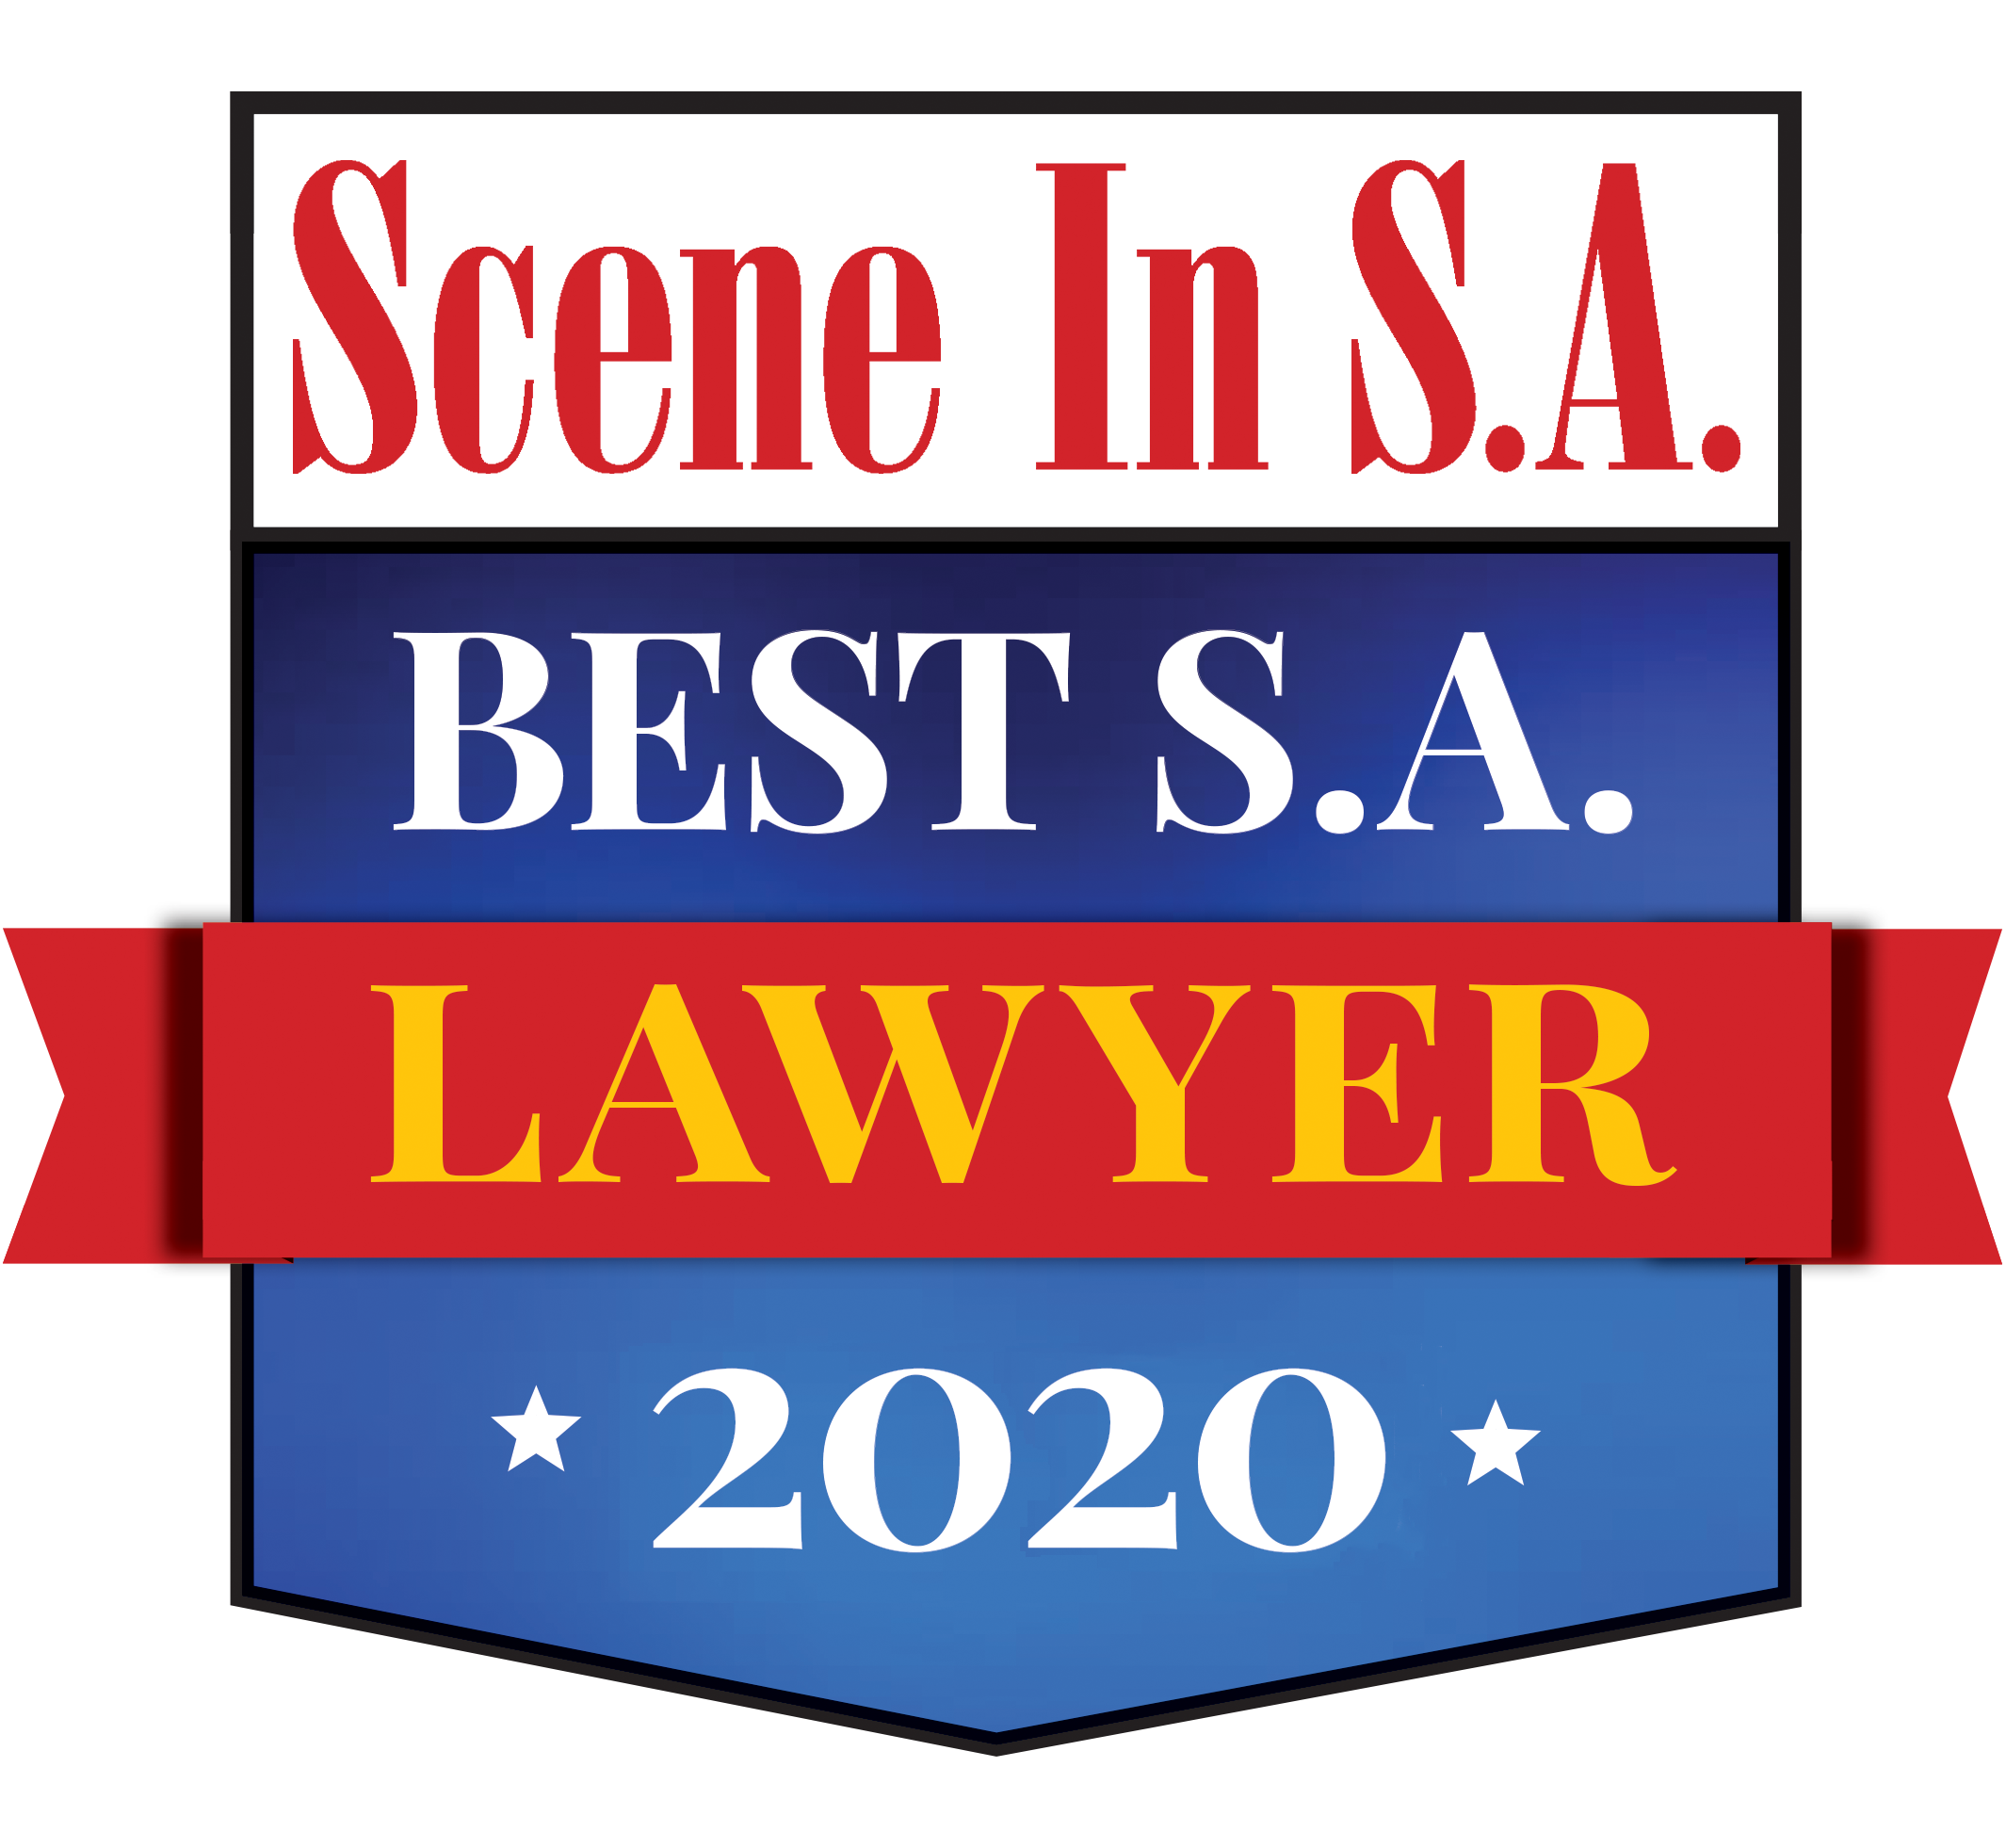 Best S.A. Lawyer